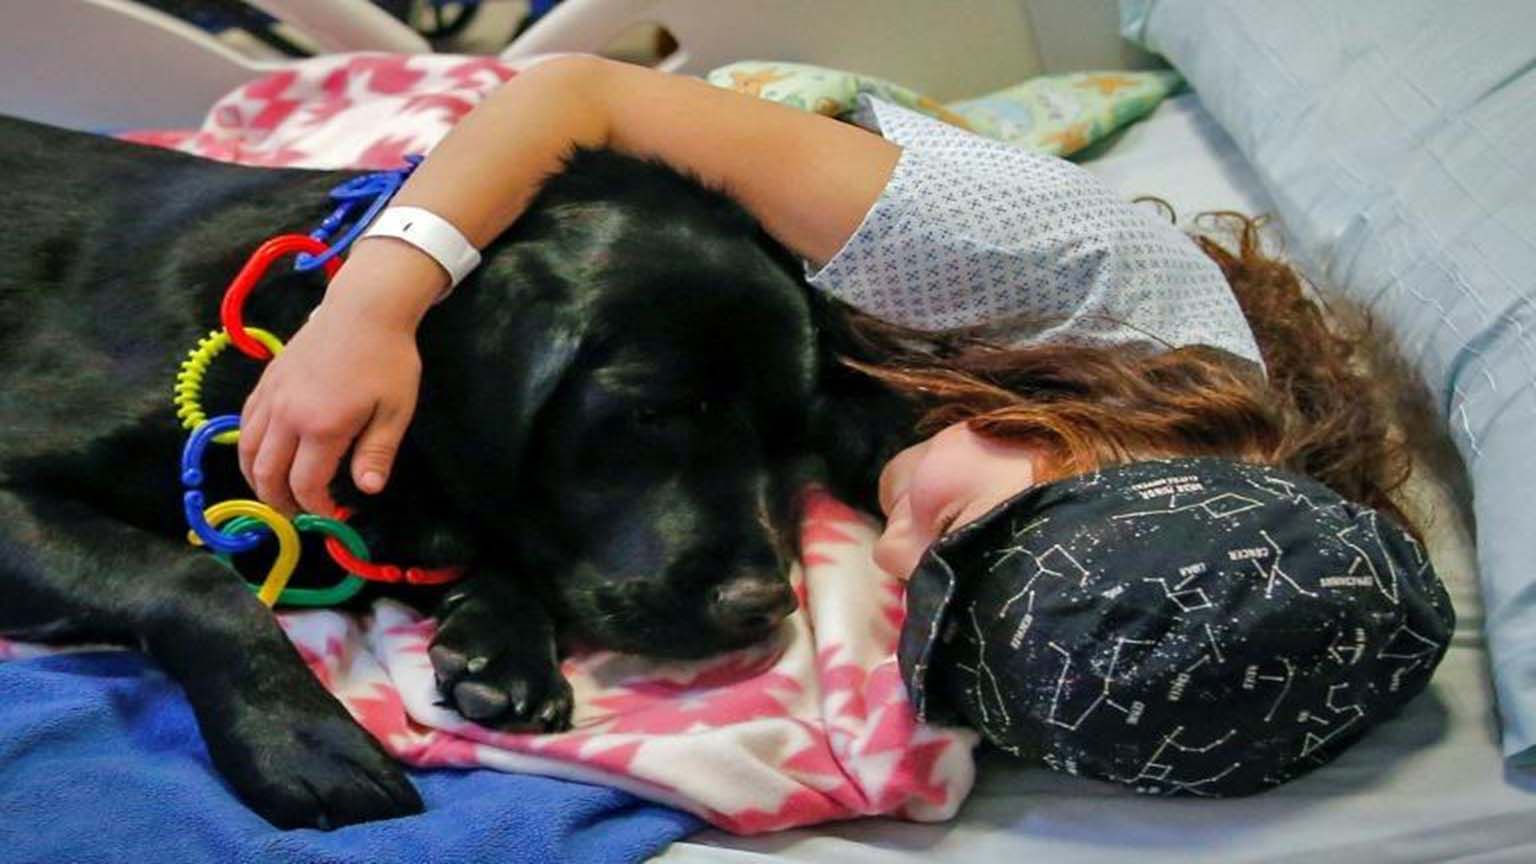 K9 dogs calm and relieve the stress of patients at a Chile hospital photo from Yahoo News